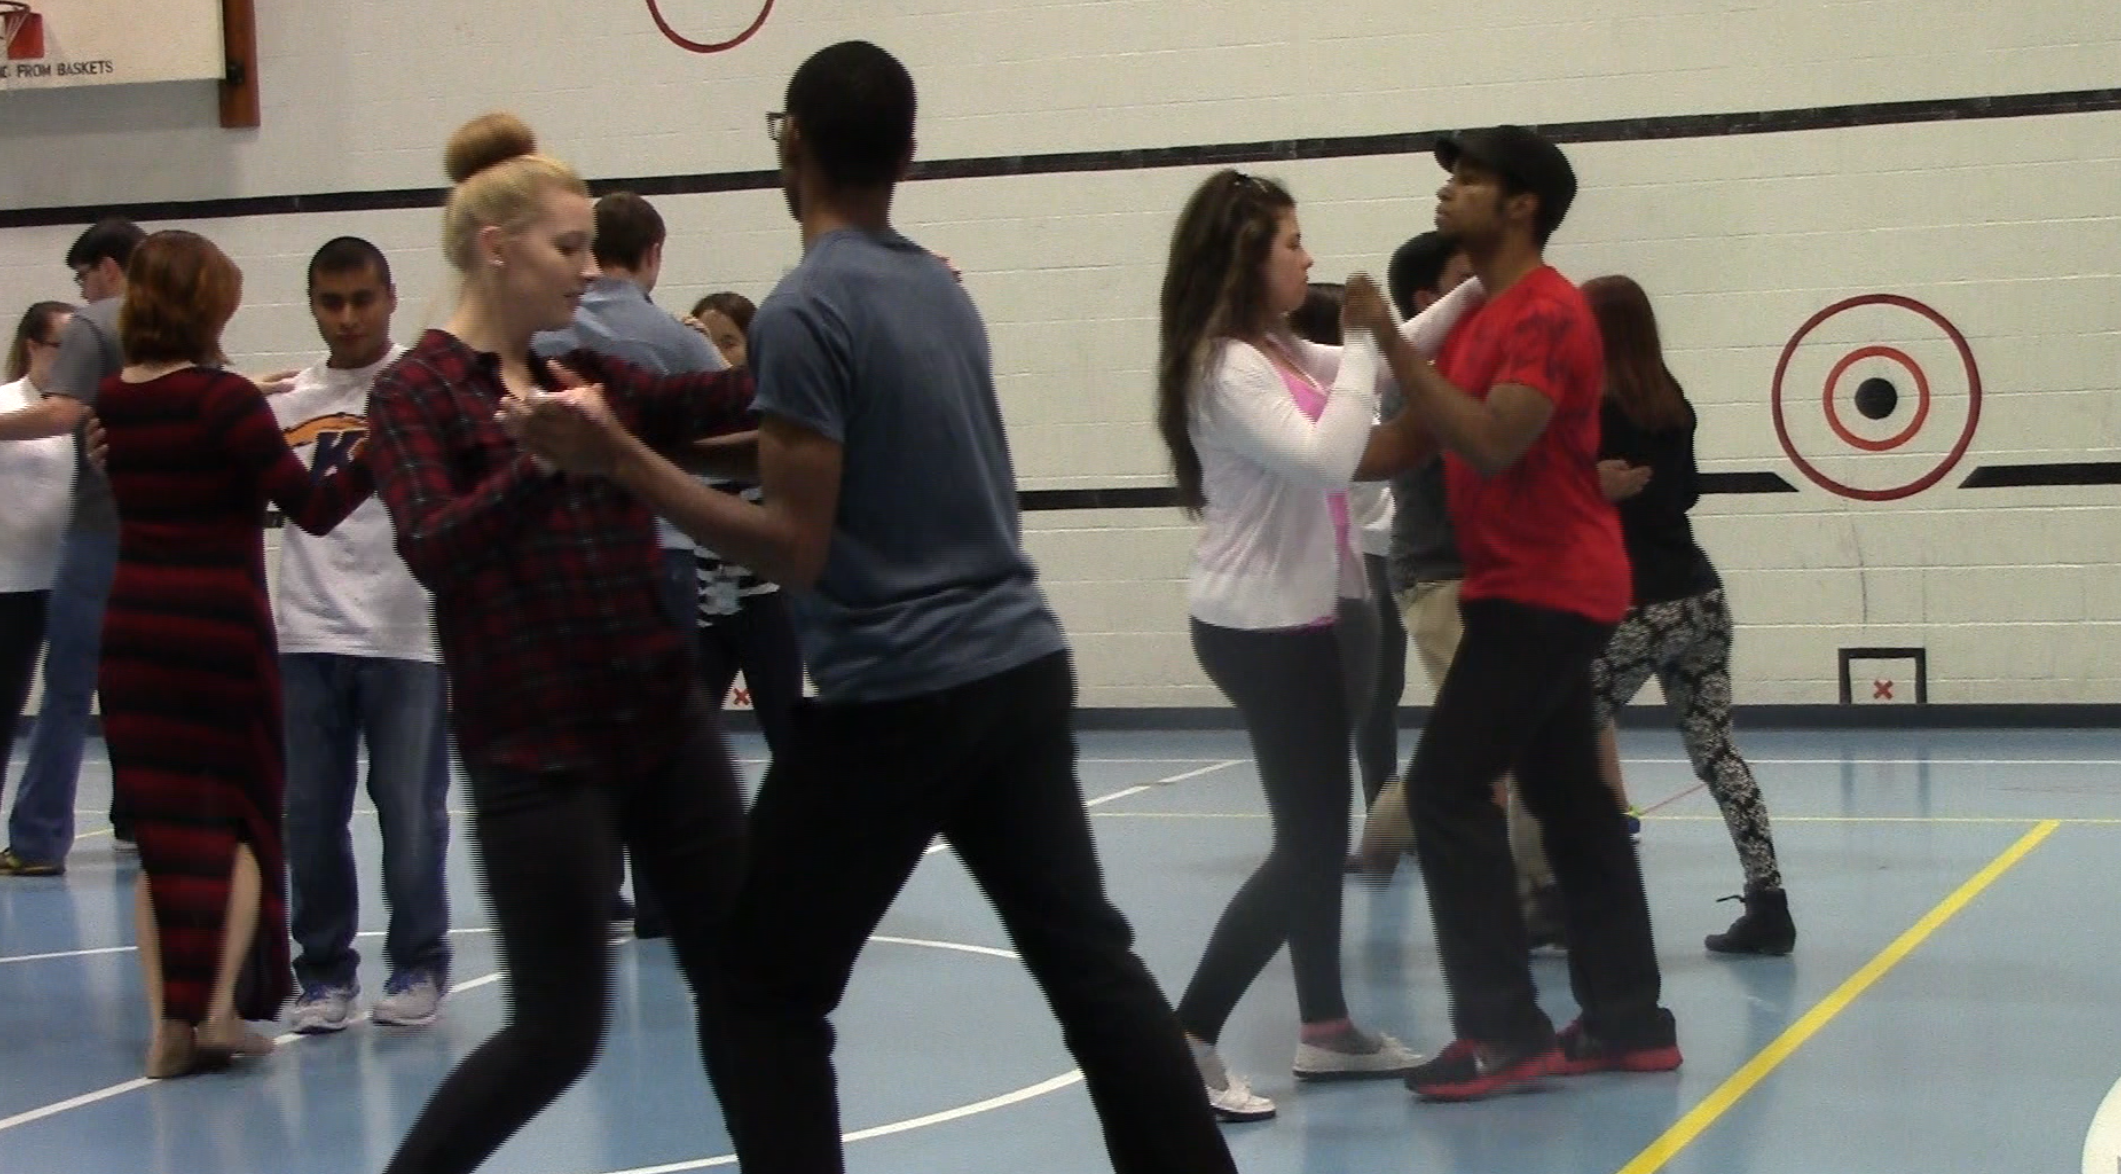 Students dance to a song by Rhianna during their ballroom dancing class.